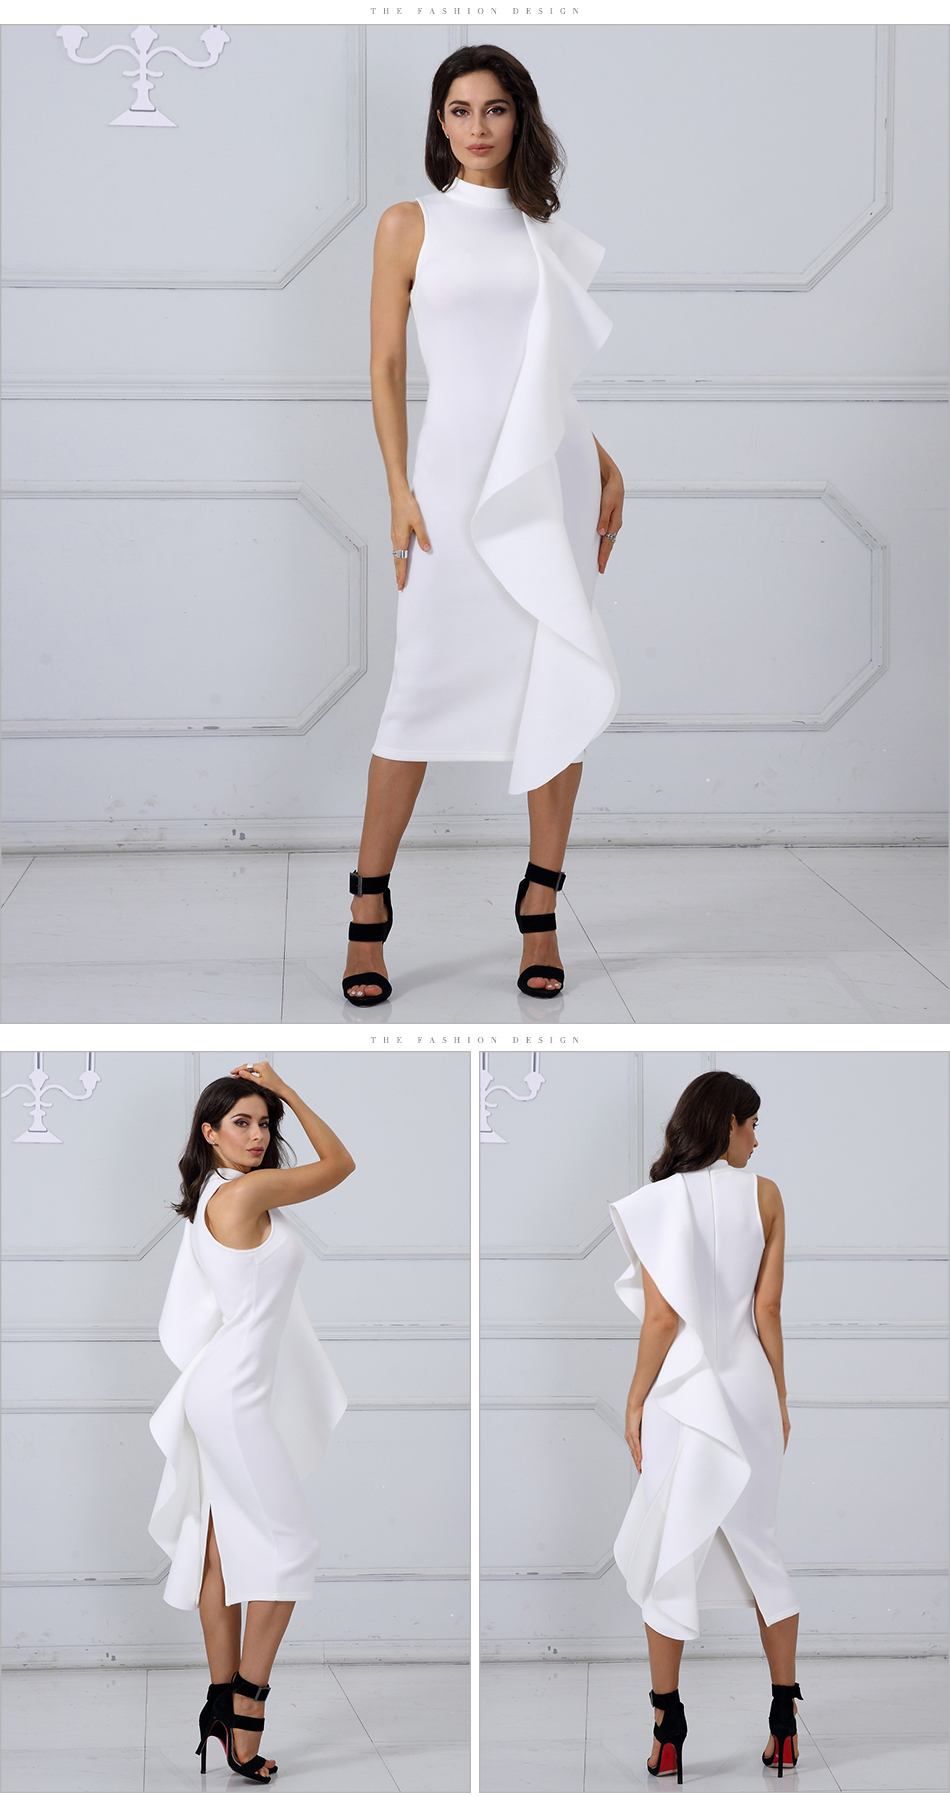 Adyce 2018 New Style Spring Dress Women Sexy White Sleeveless Patchwork Ruffles Bodycon Vestidos Celebrity Party Dress Clubwear 8